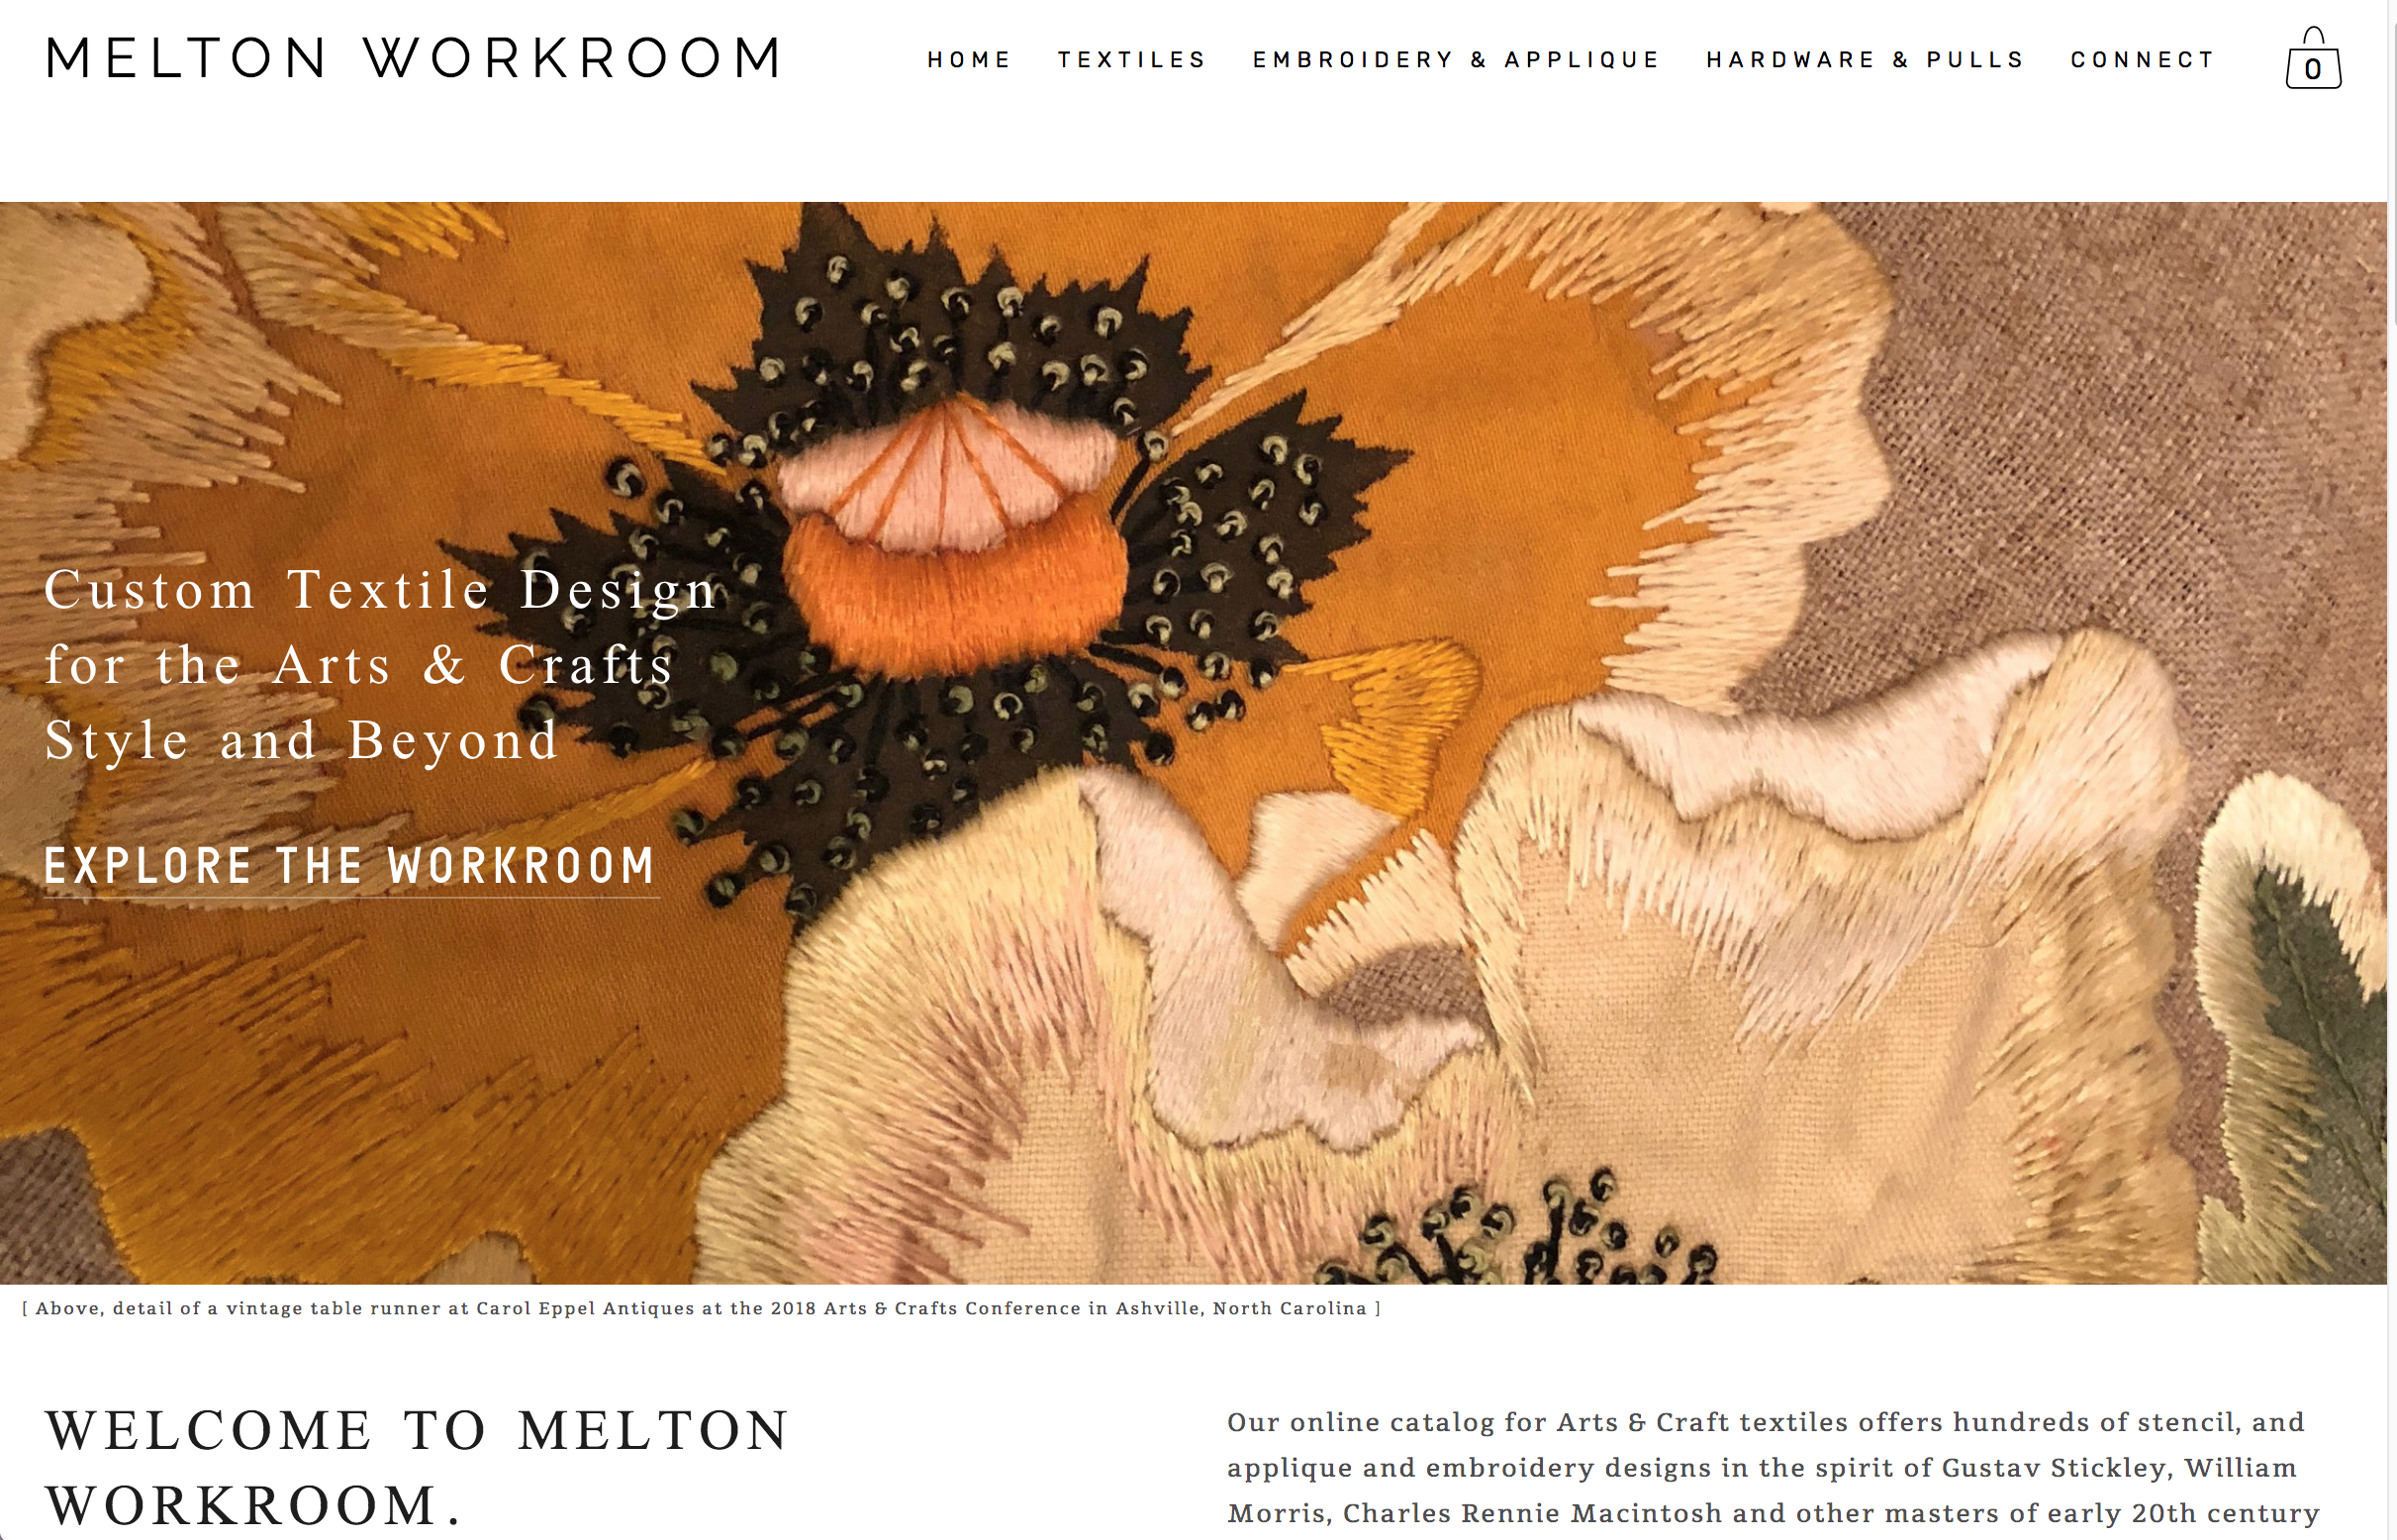 melton workroom [textiles & design]